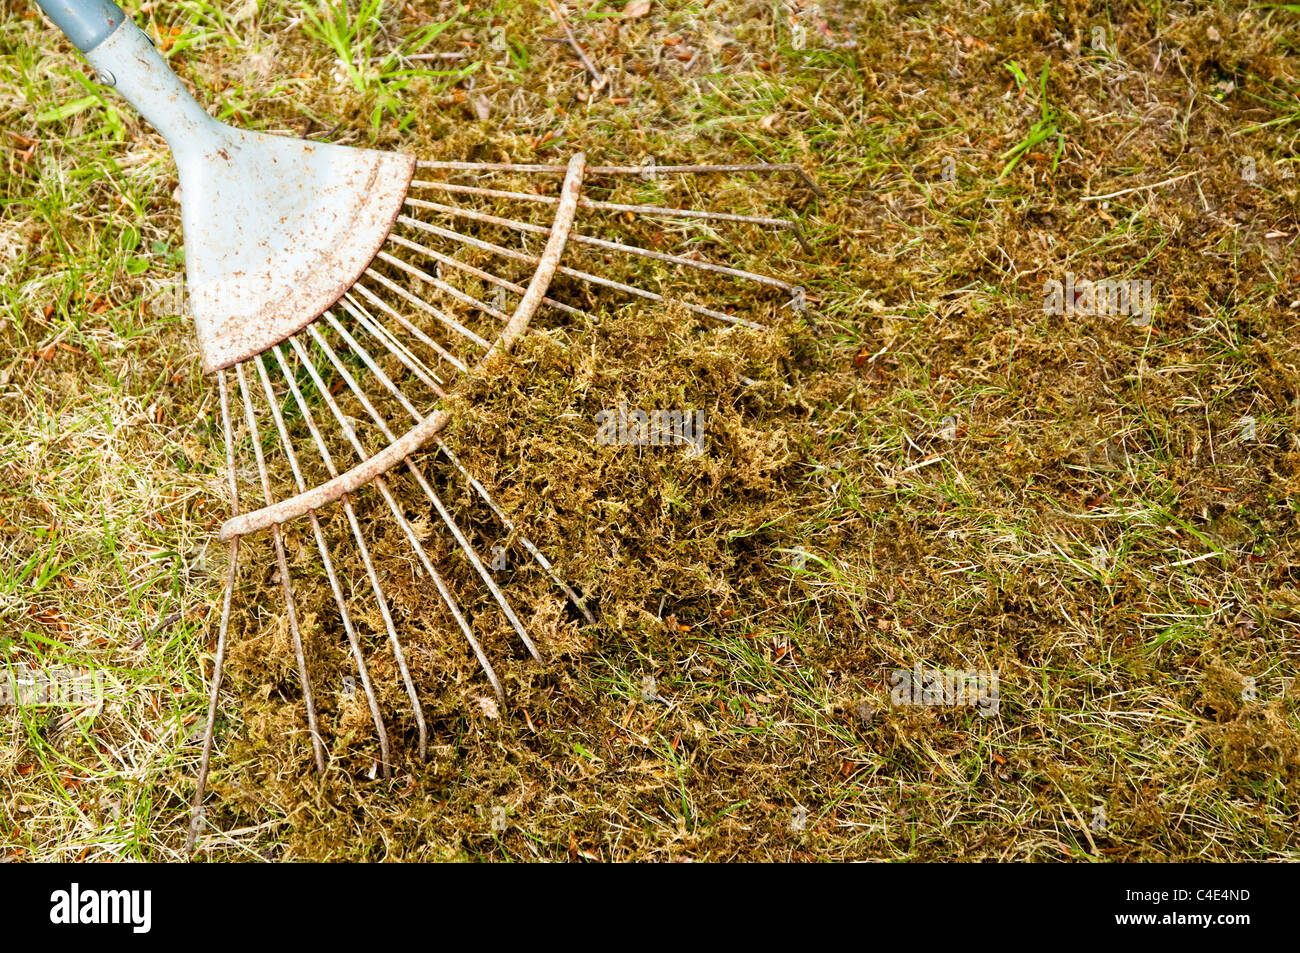 Scarifying - removing  moss from a garden lawn / grass by using a scarifier rake. UK - Stock Image